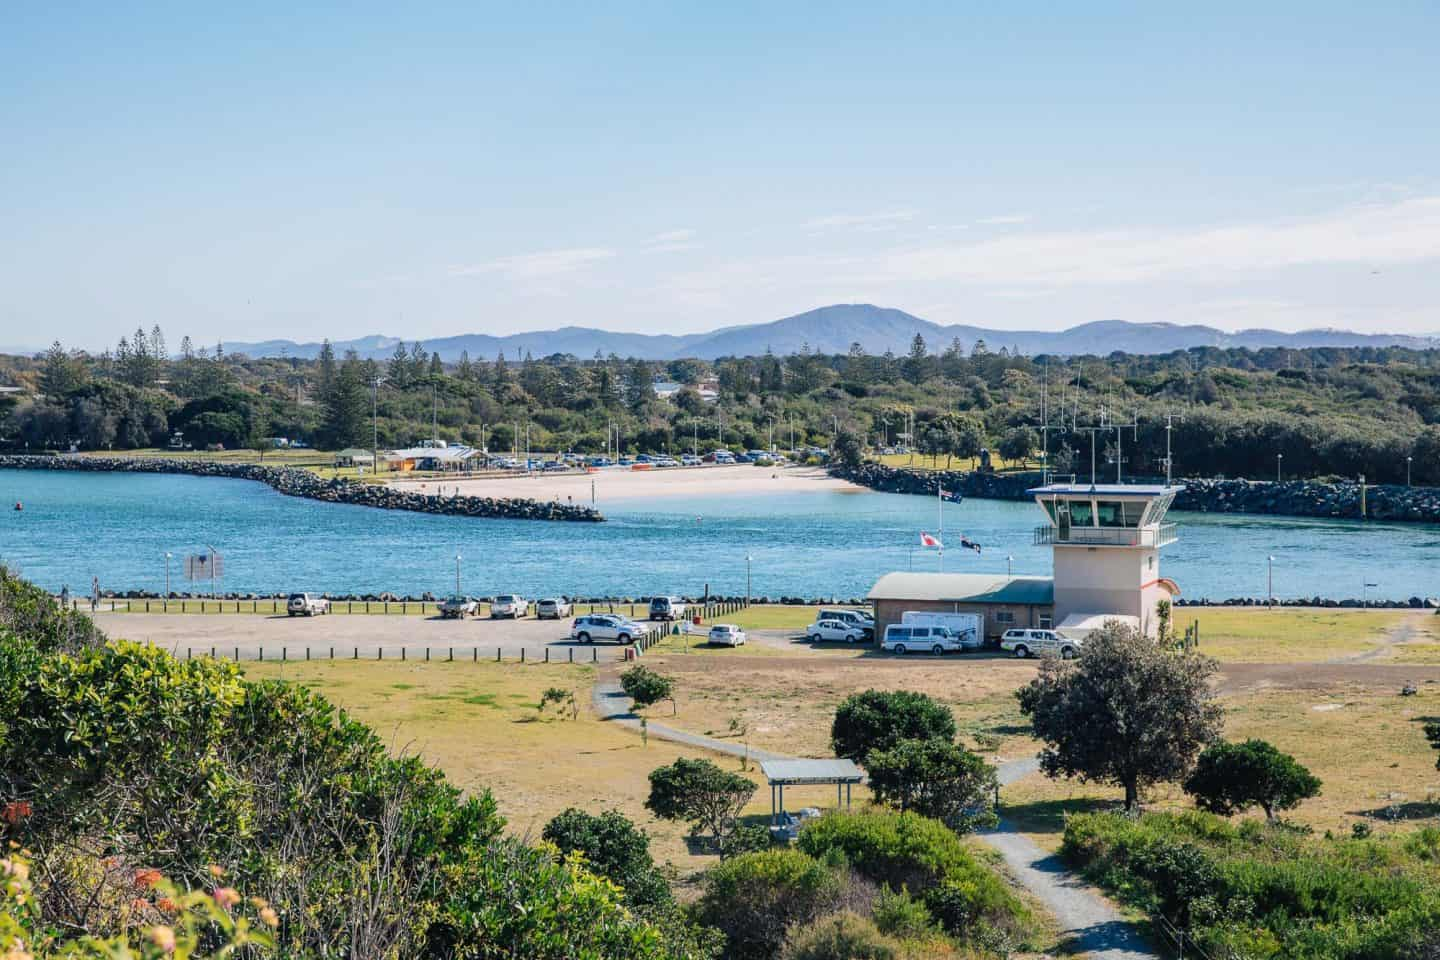 Forster nsw, things to do in forster, what to do in forster, things to do forster, camping in forster, beaches in forster, beaches at forster, forster beach, forster main beach